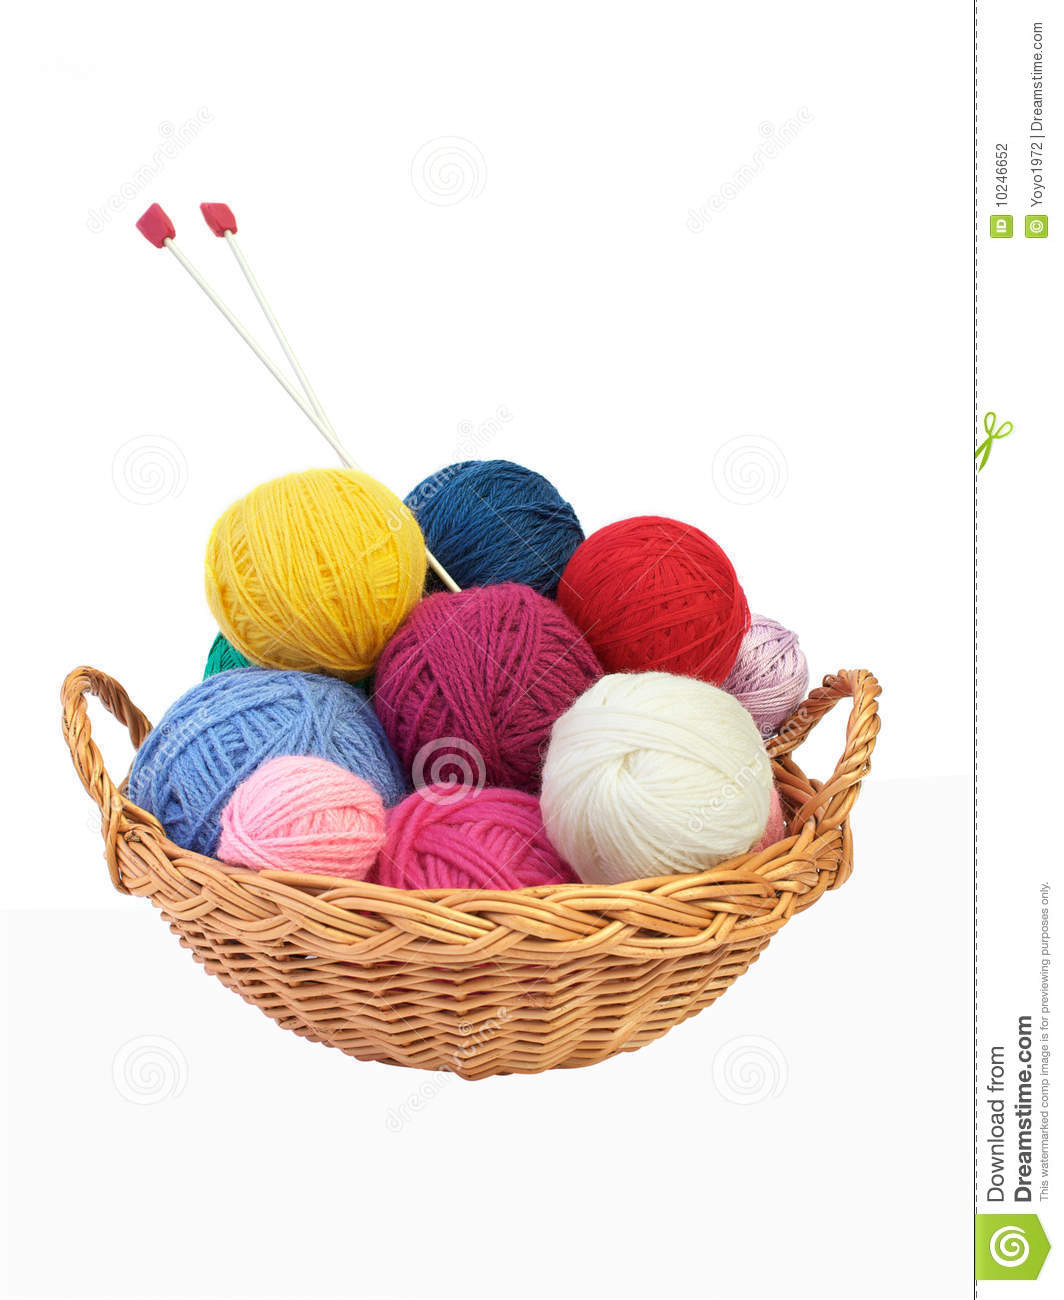 Awesome Colorful Knitting Yarn and Needles In A Basket Stock Knitting Needles and Yarn Of Amazing 46 Ideas Knitting Needles and Yarn